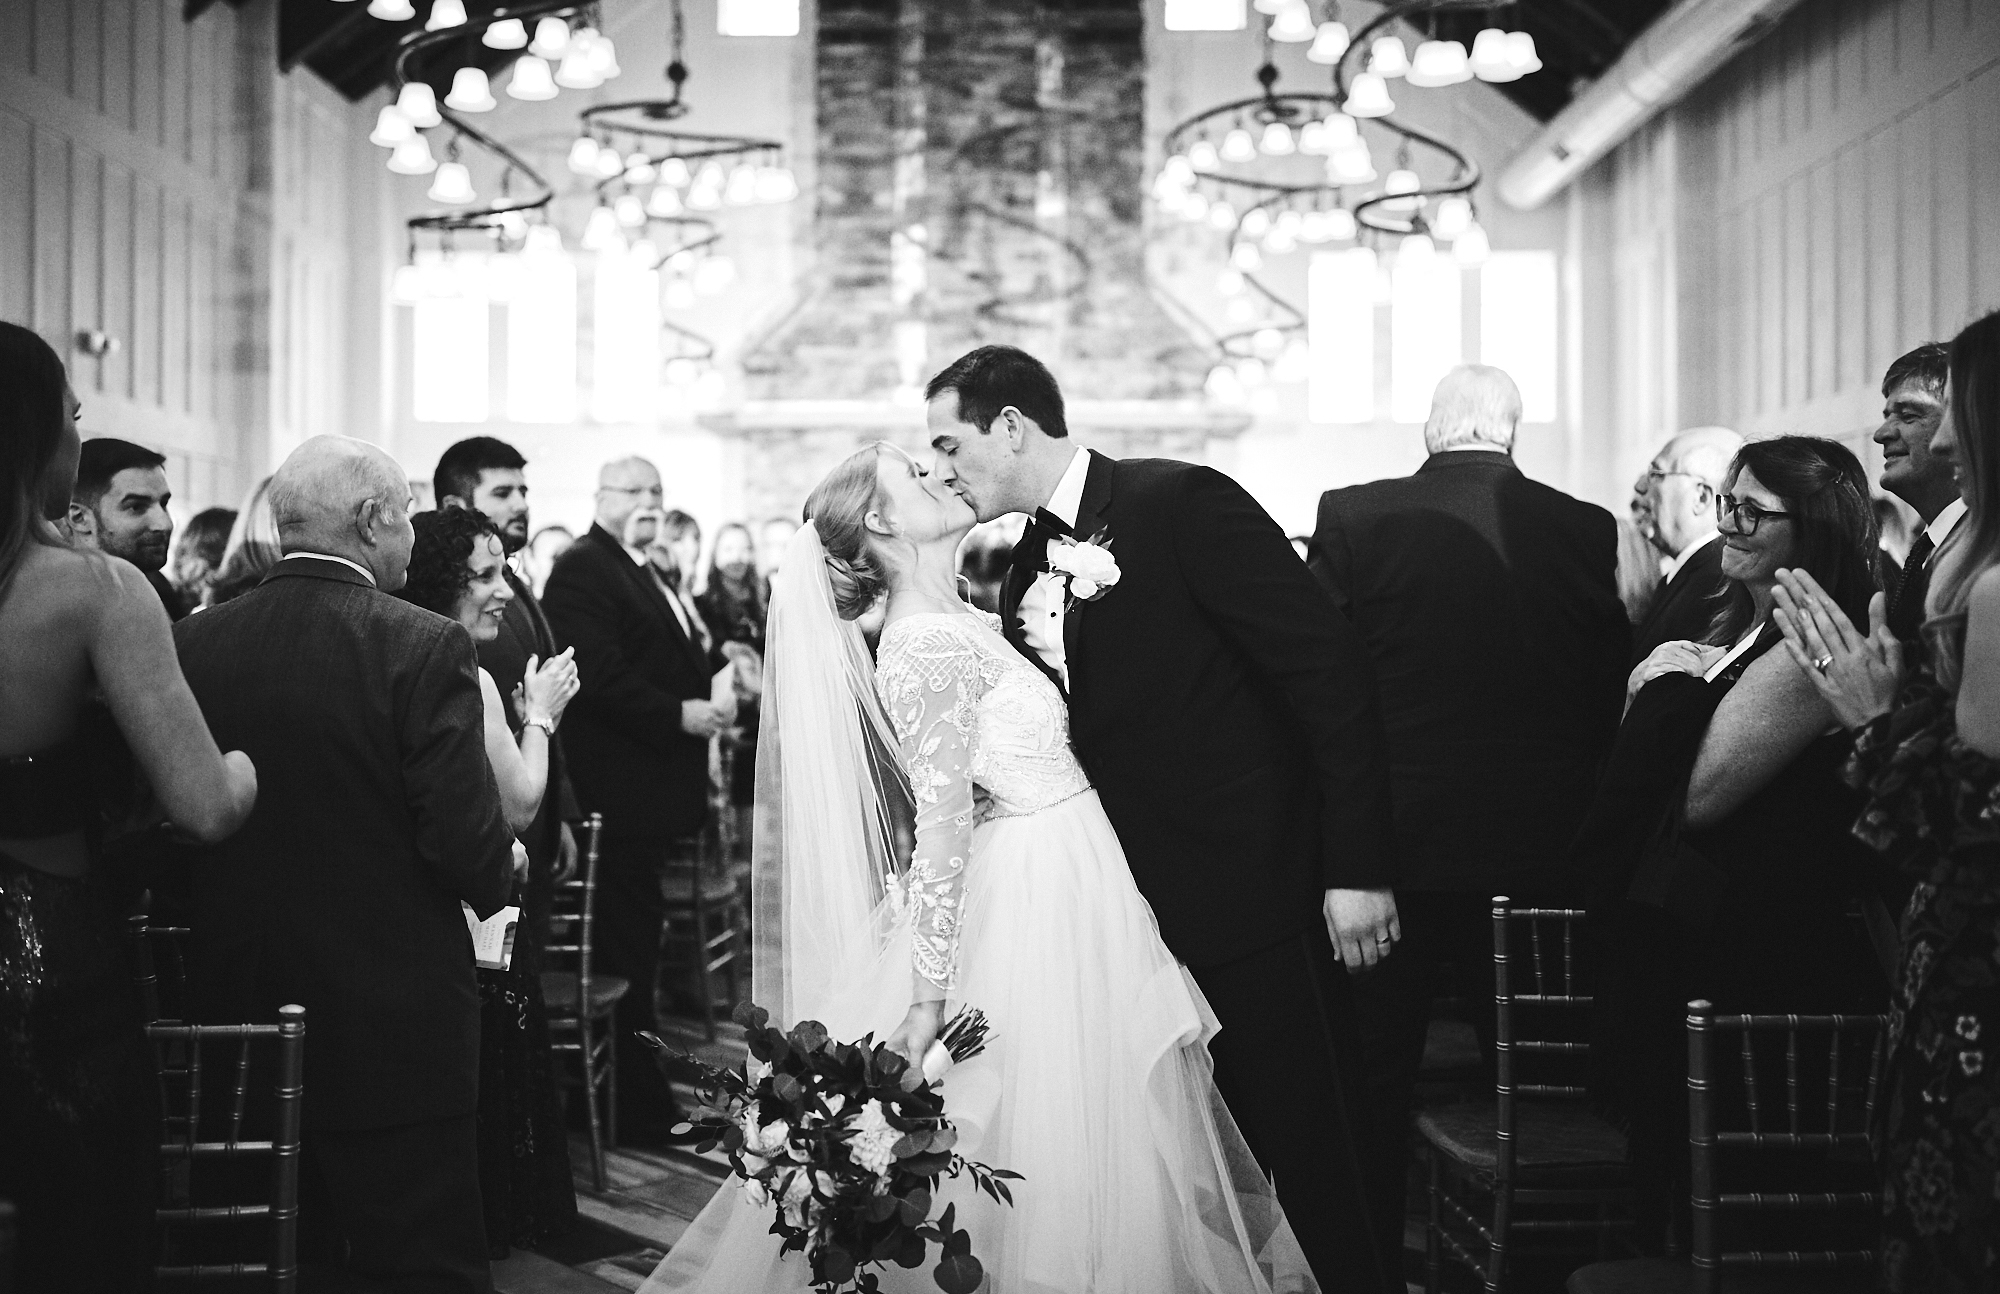 181027_TheRylandInnFallWeddingPhotography_NJWeddingPhotographer_By_BriJohnsonWeddings_0111.jpg